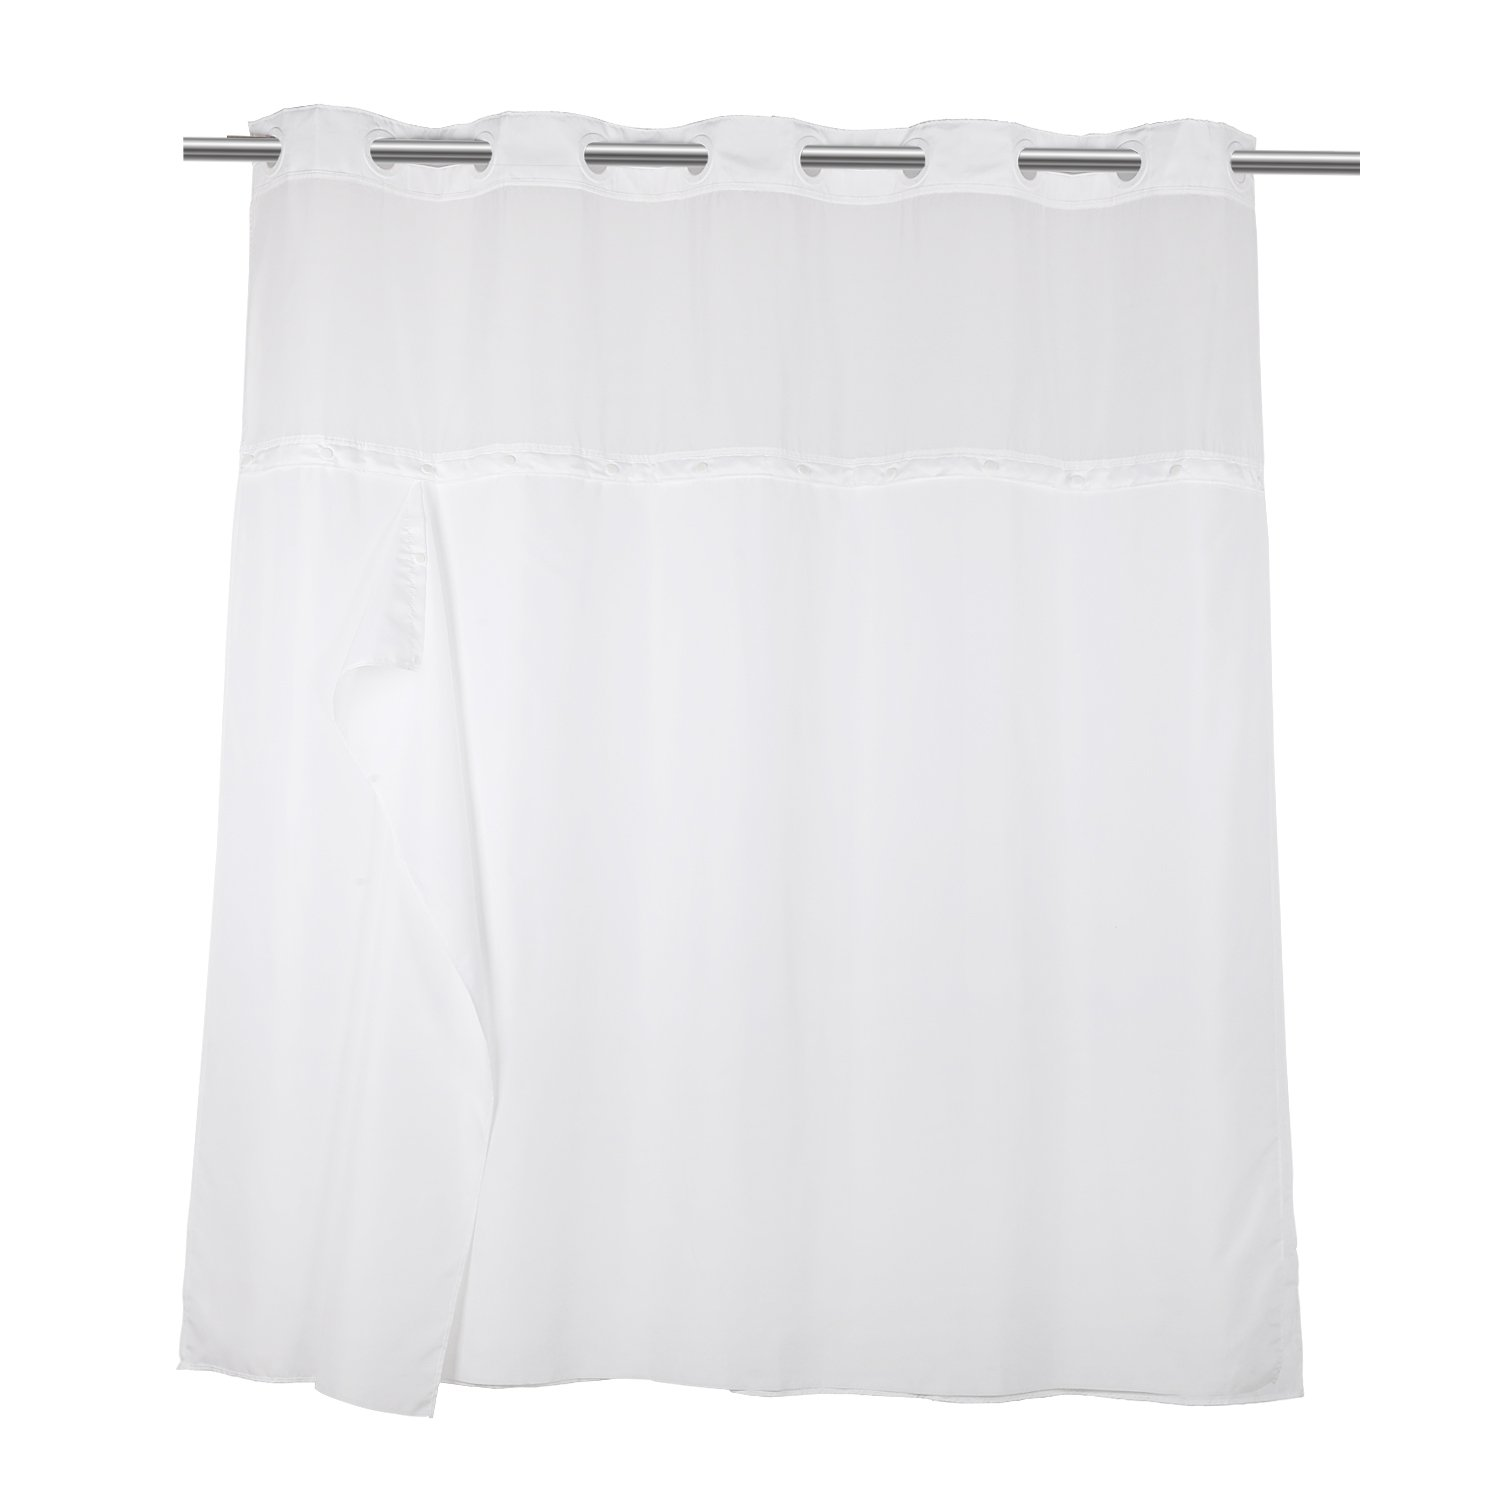 Hookless Shower Curtain with Removed Fabric Inner Liner 70.8 x 74 Inch Polyester Bath Curtain with Light-Filtering Mesh Screen Anti Mildew White